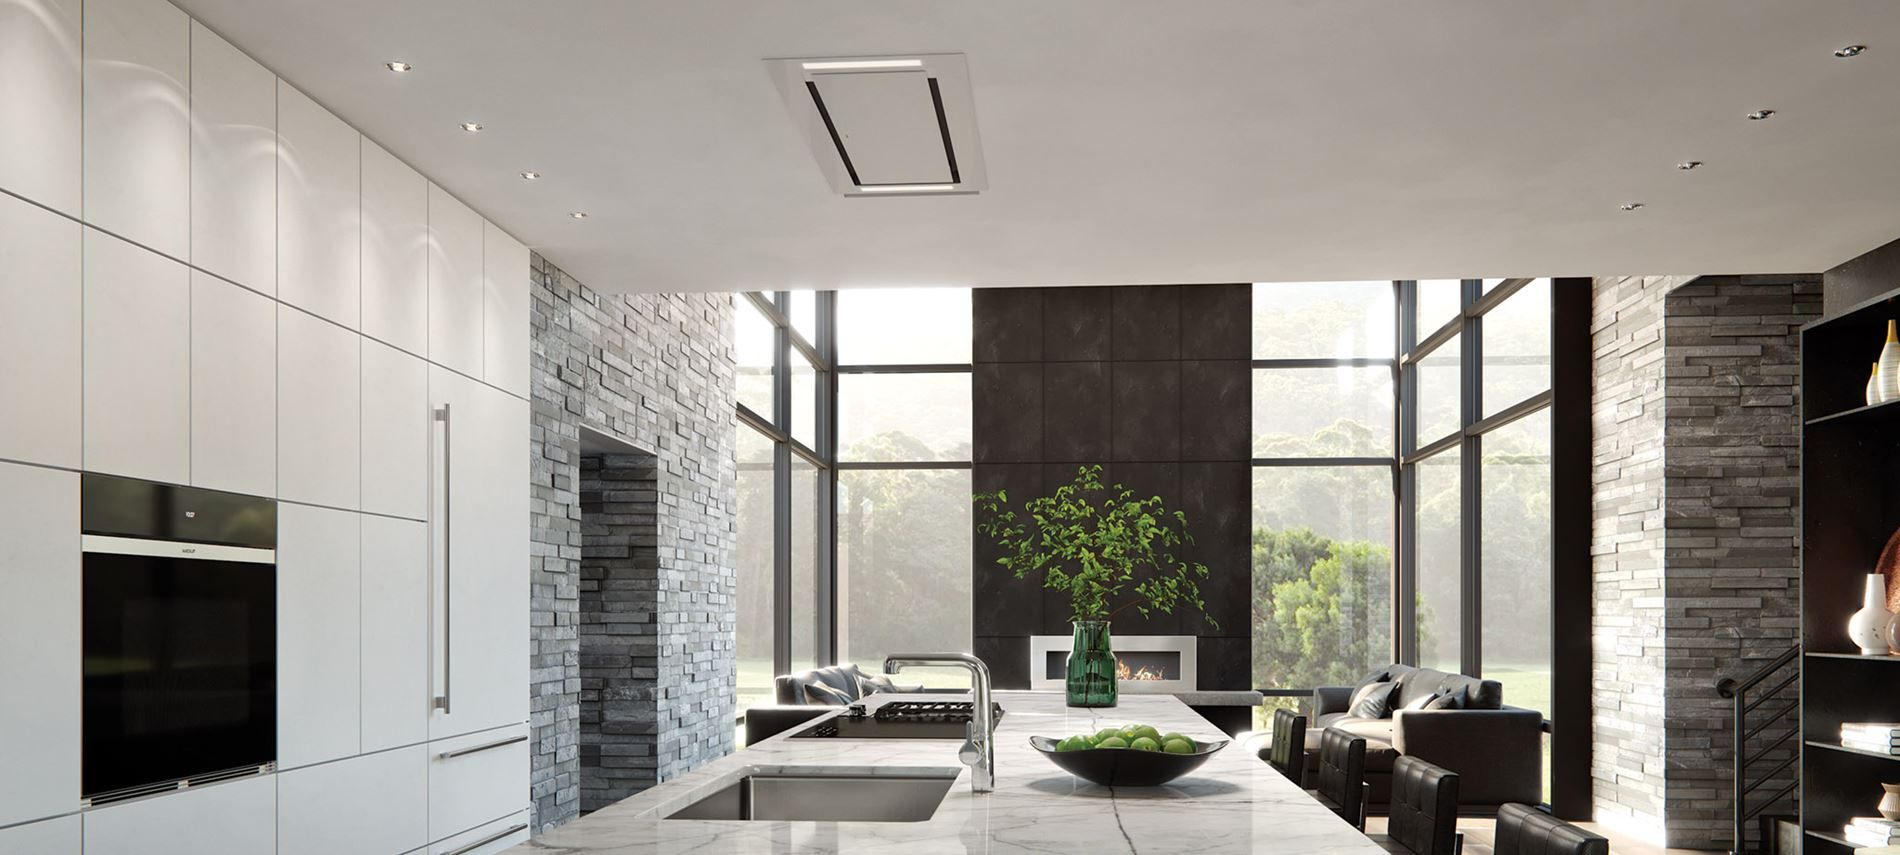 48 Ceiling Mounted Ventilation Vc48w Wolf Appliances Ceiling Mount Range Hood Range Hood Ventilation Design